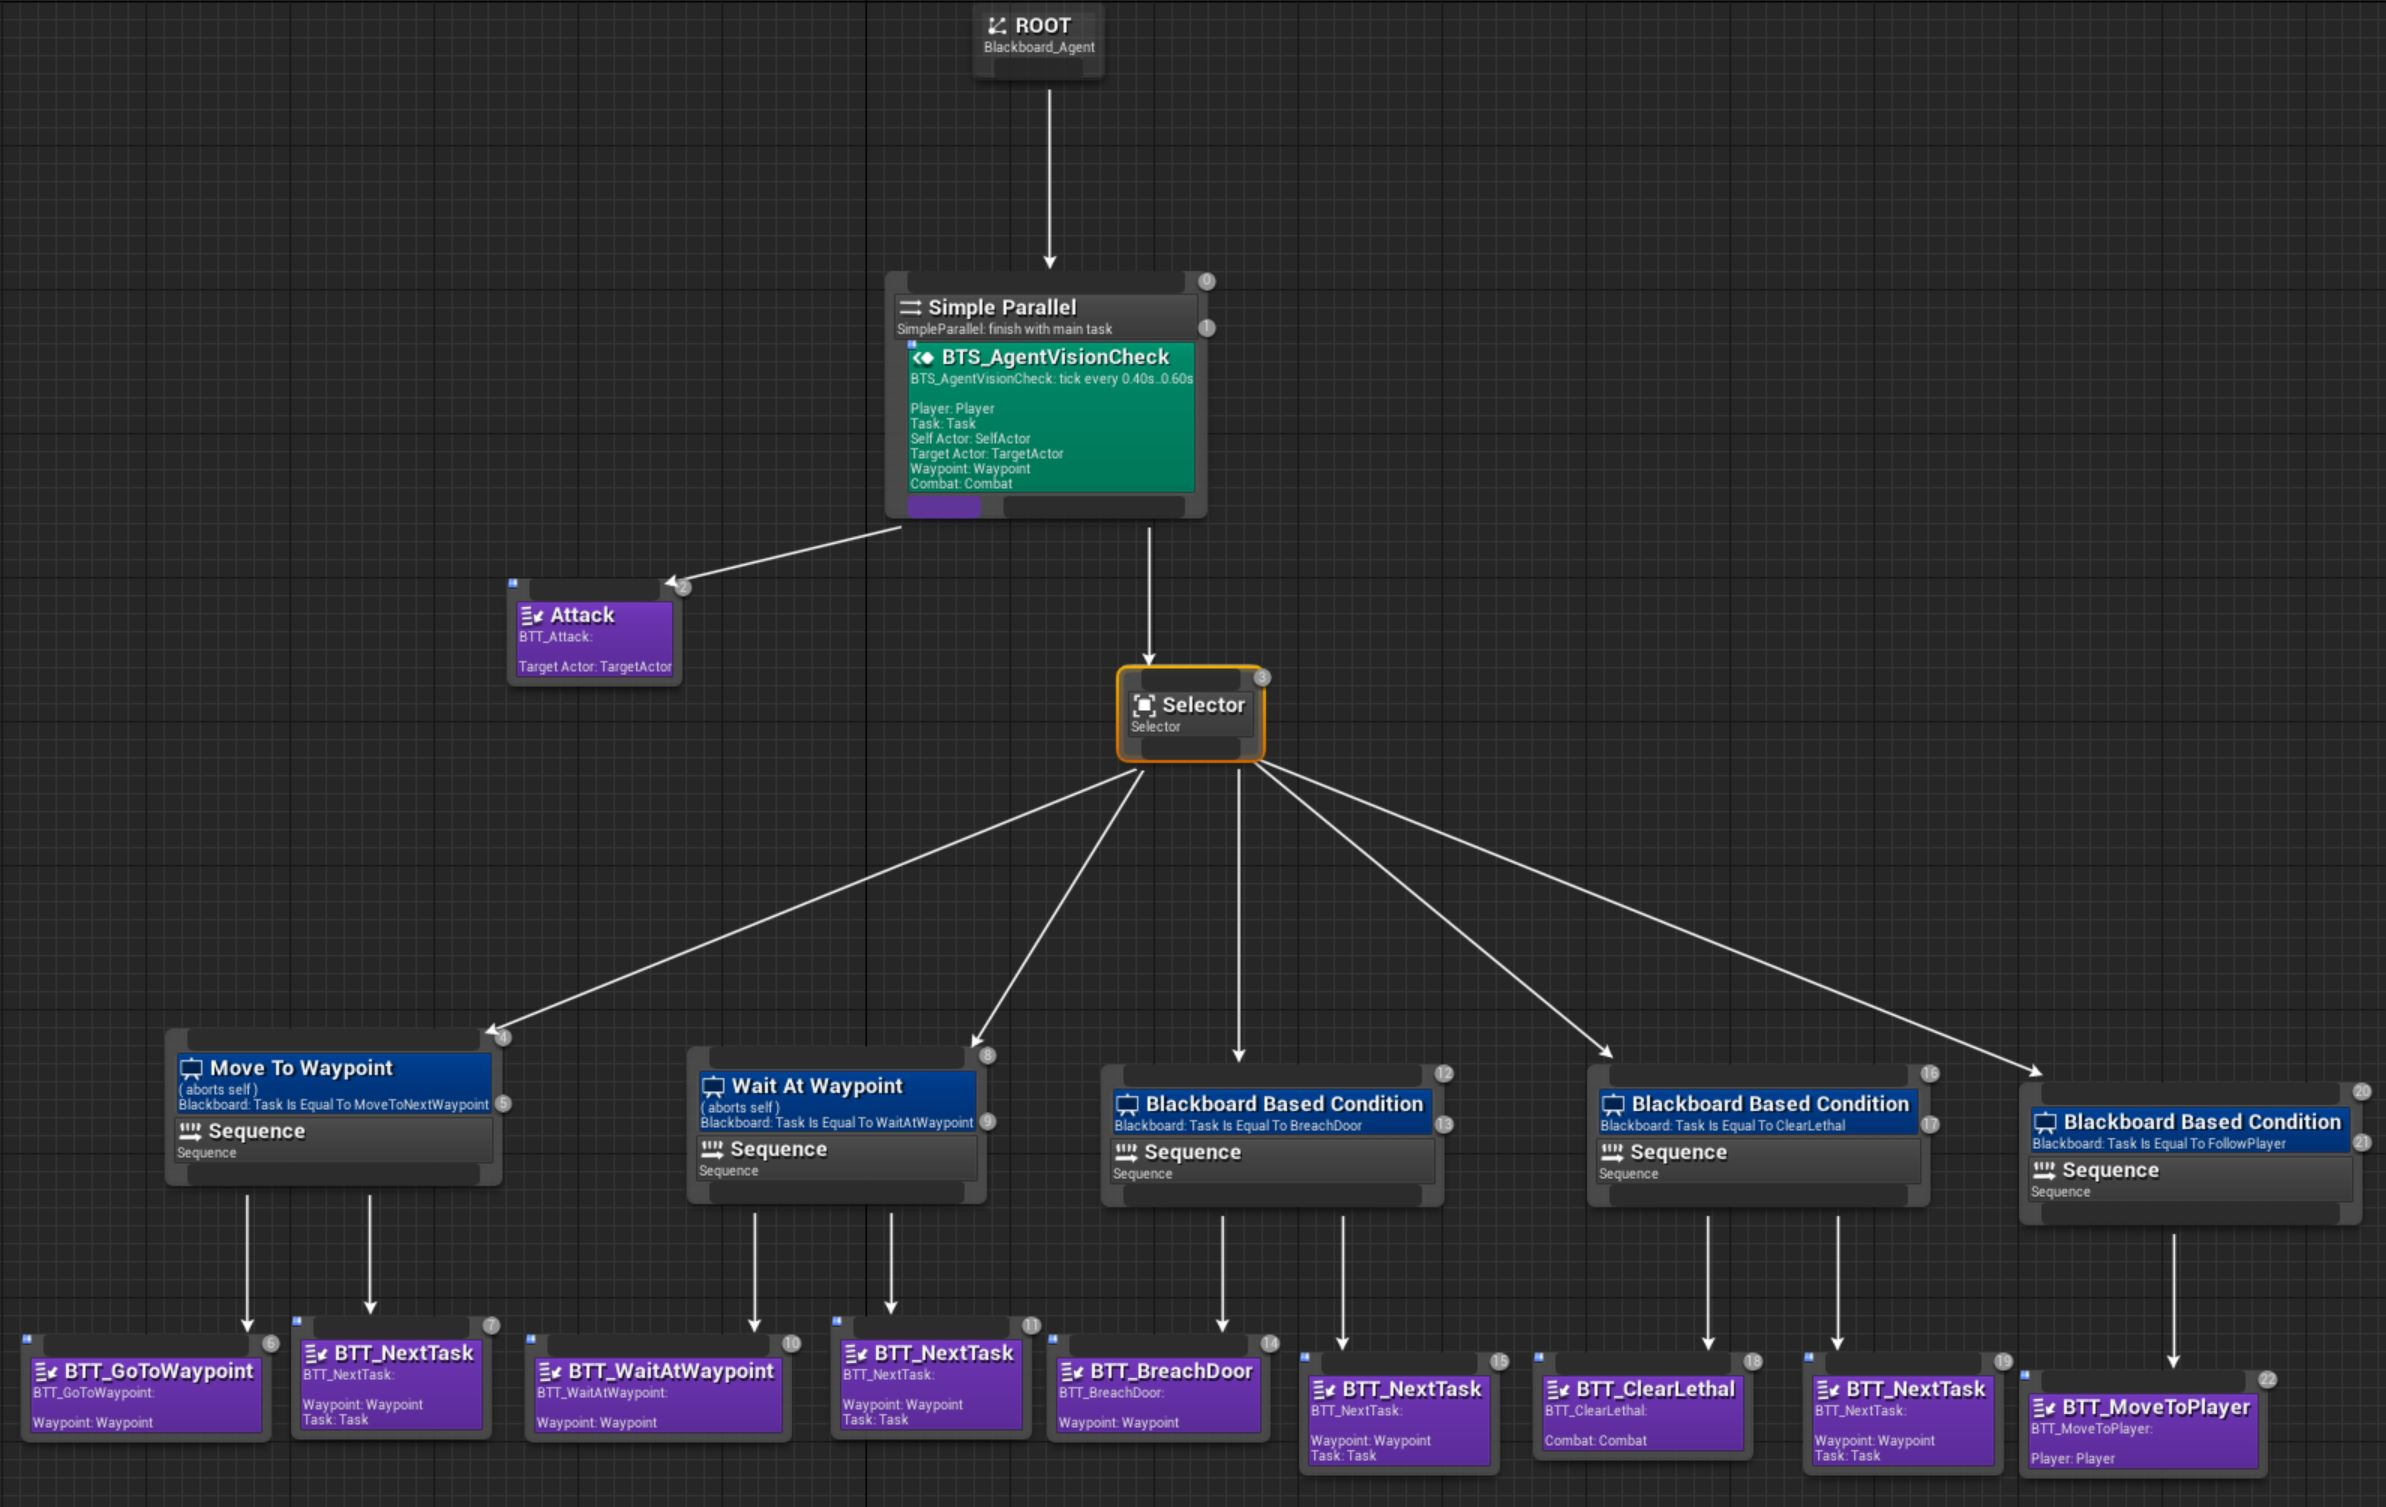 The BLISTER Team AI behaviour tree